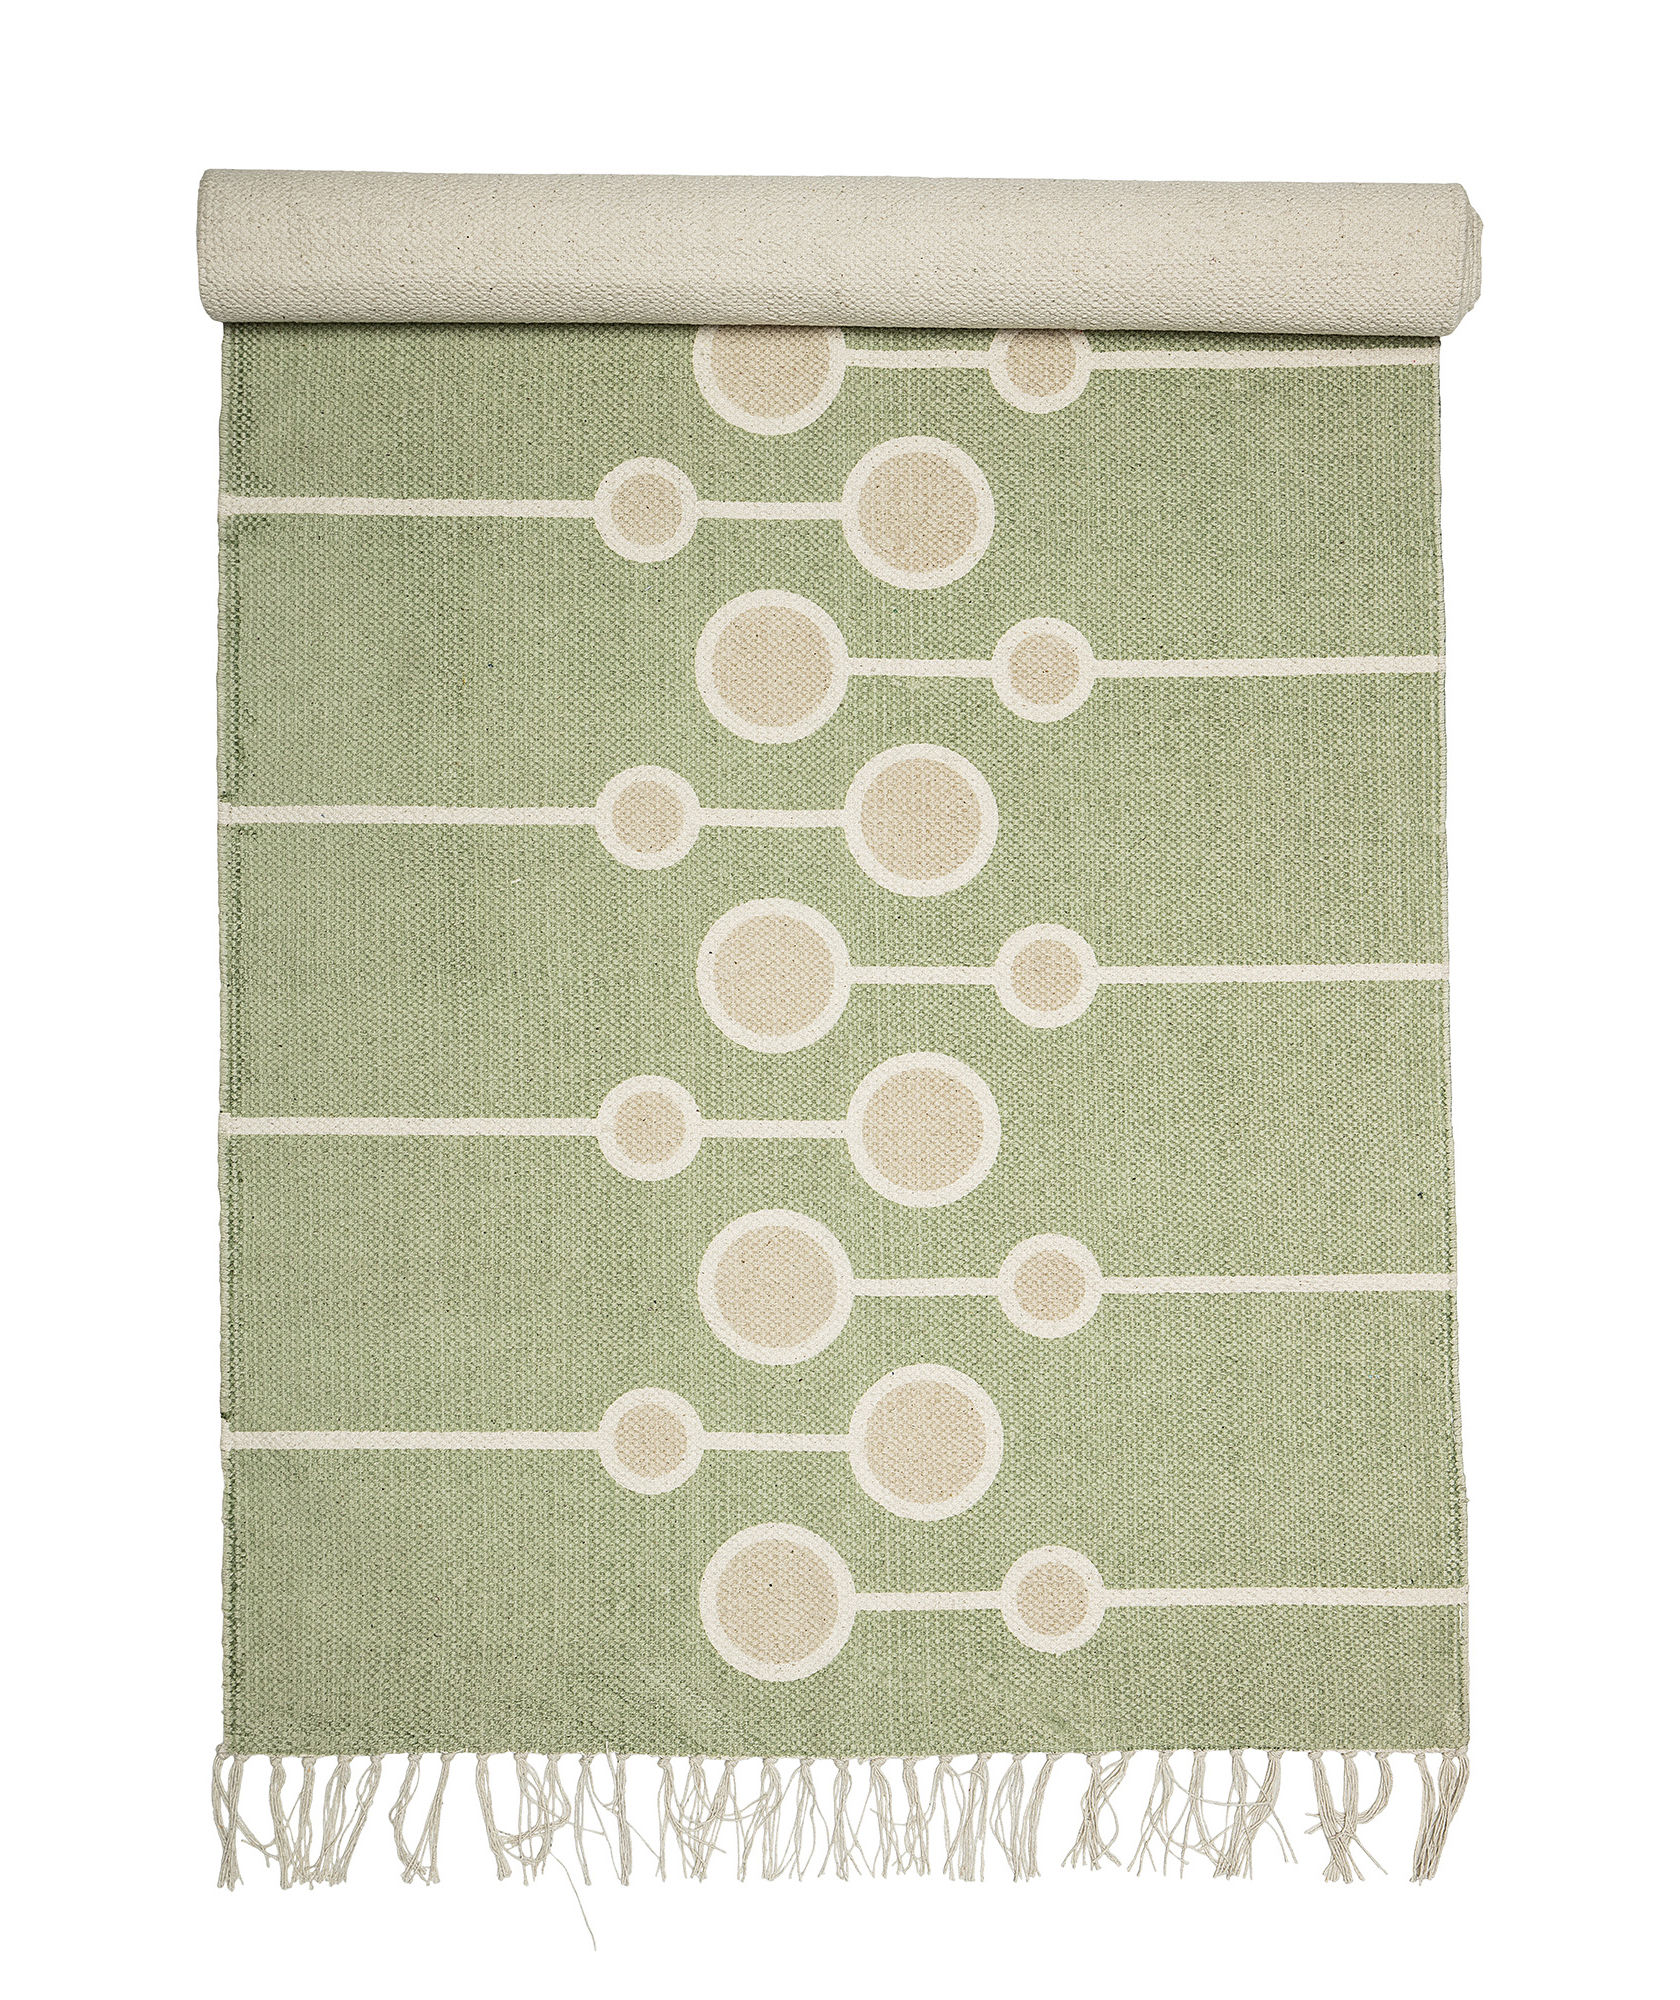 Decoration - Rugs - Rug - / Cotton - 200 x 70 cm by Bloomingville - Green - Cotton